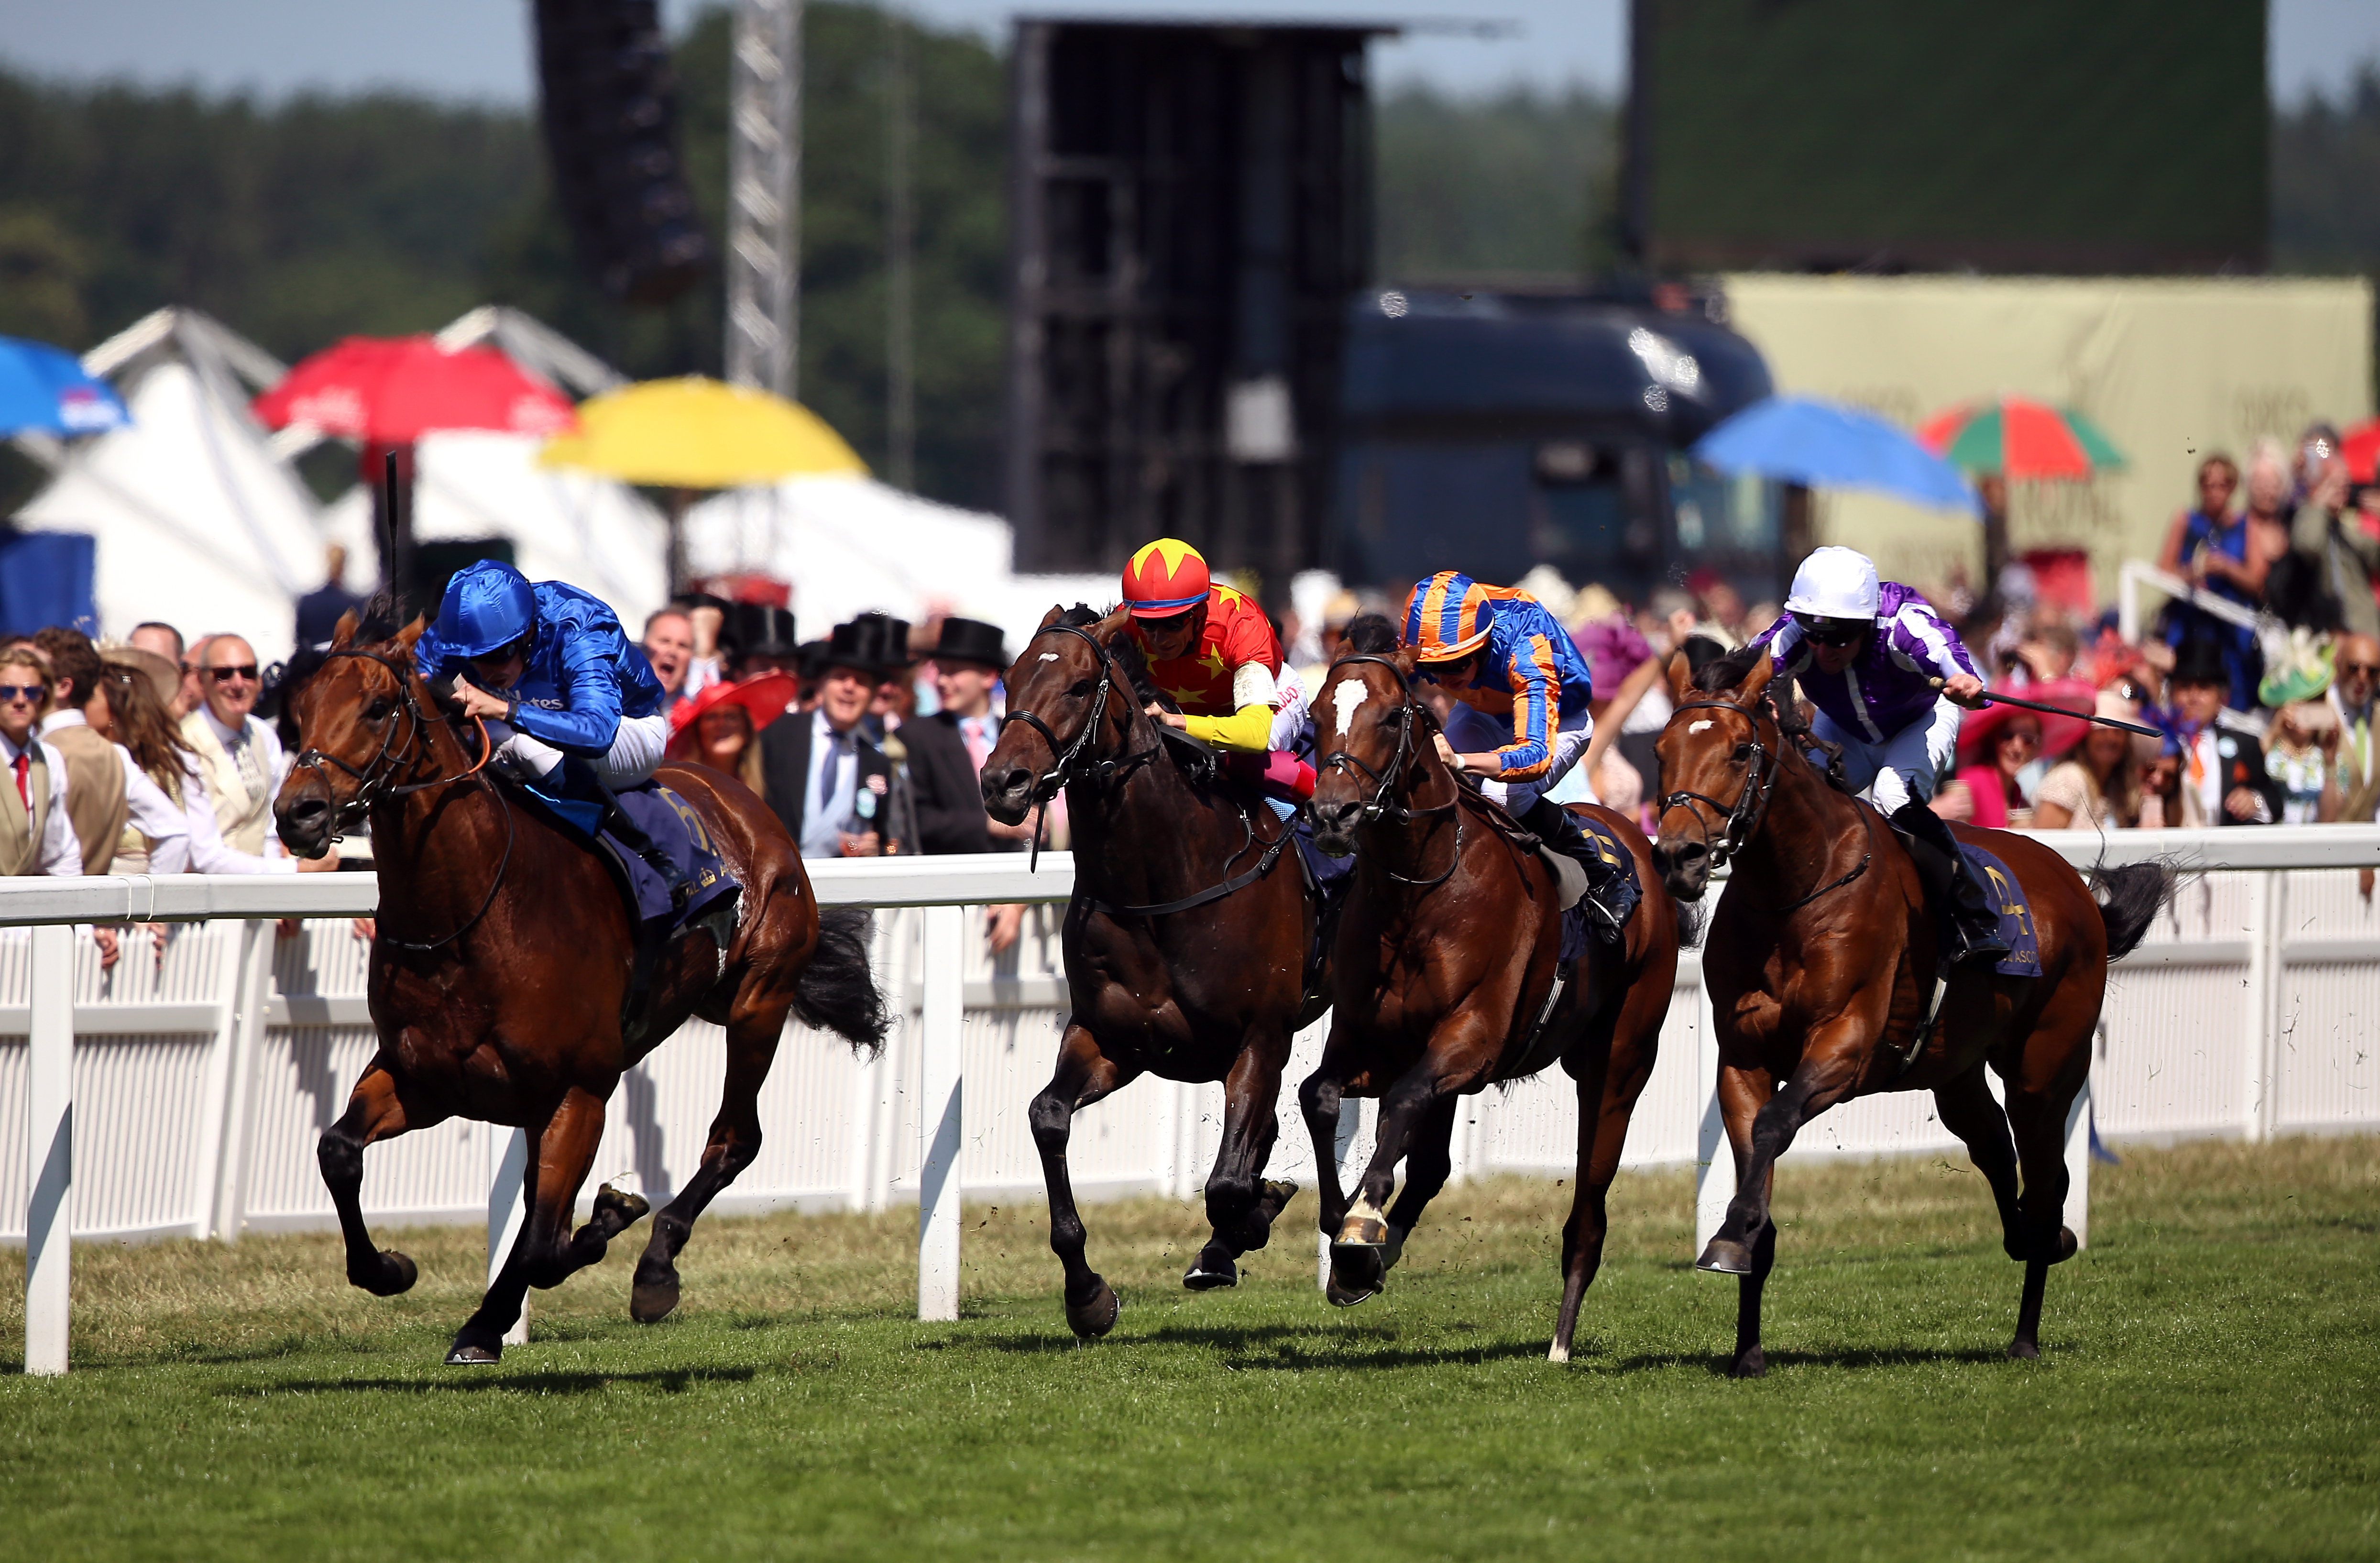 Royal Ascot winner Old Persian could yet go for the St Leger